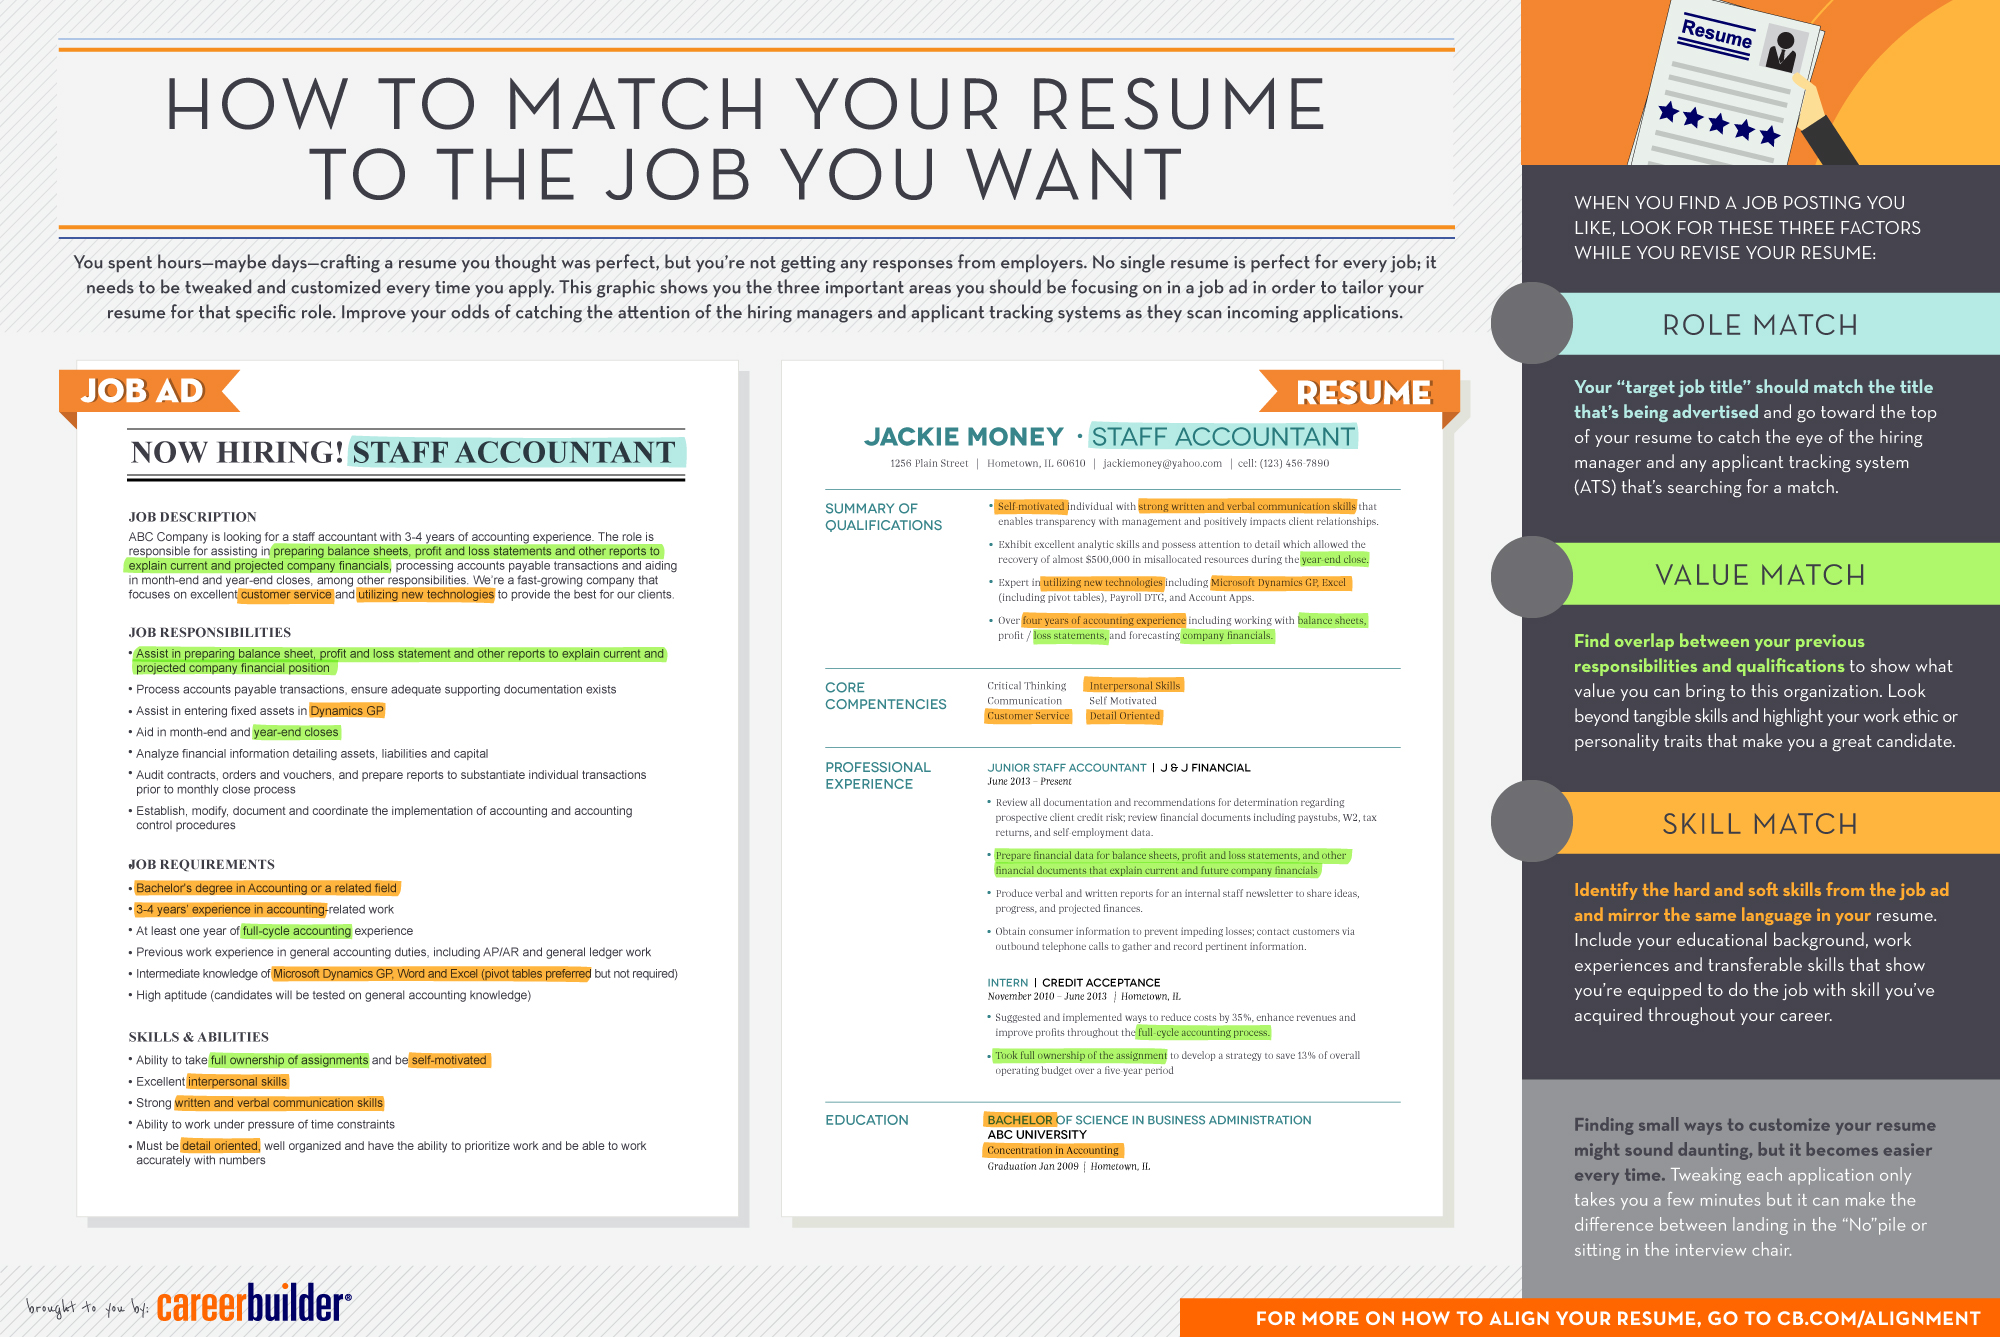 ifo 0044_customresume_snippet - Career Builder Resumes